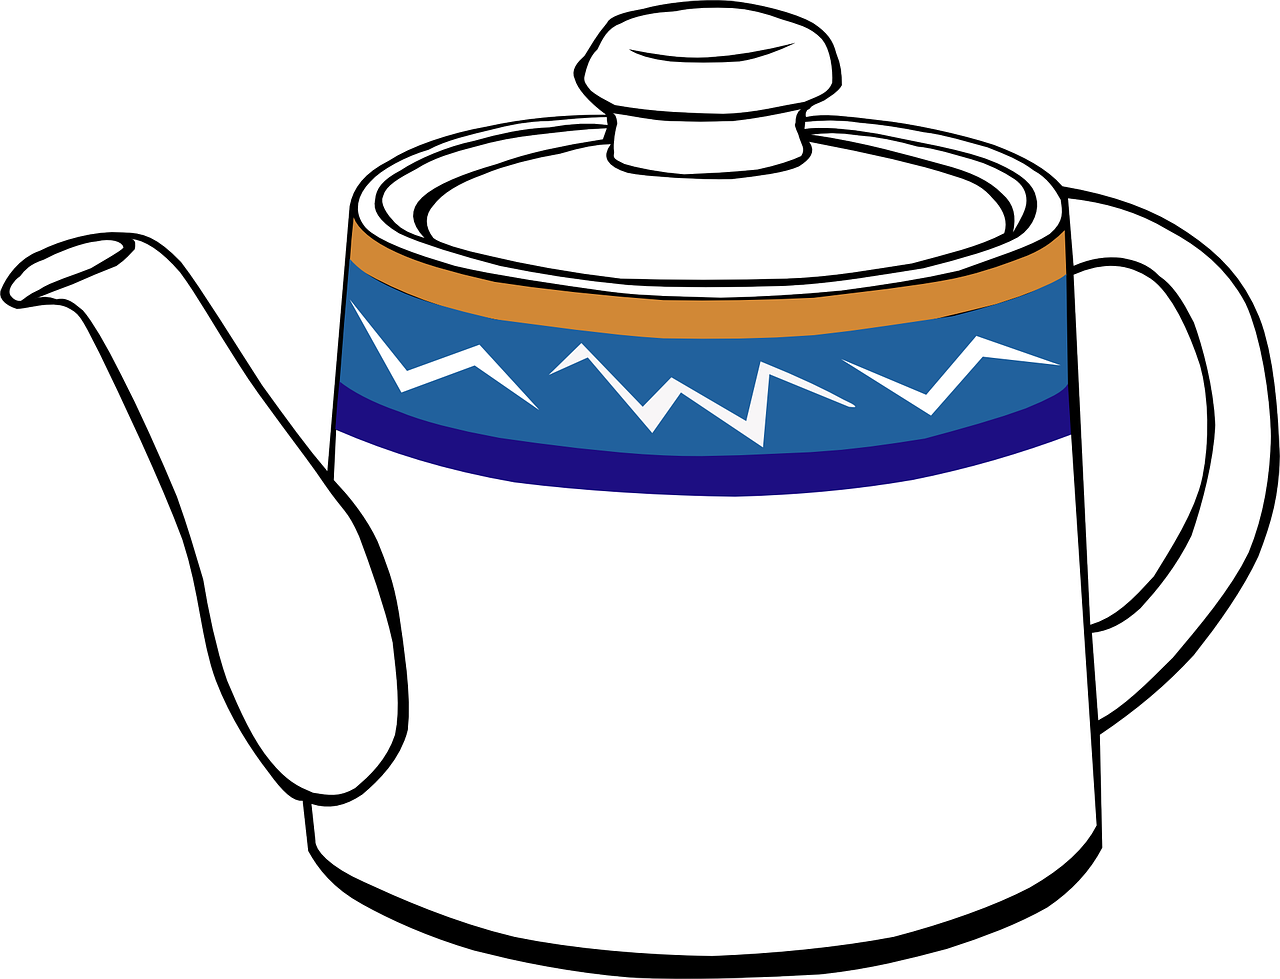 teapot,vessel,steeping,tea,pot,infusion,beverage,drinks,jug,blue,white,designs,patterns,free vector graphics,free pictures, free photos, free images, royalty free, free illustrations, public domain